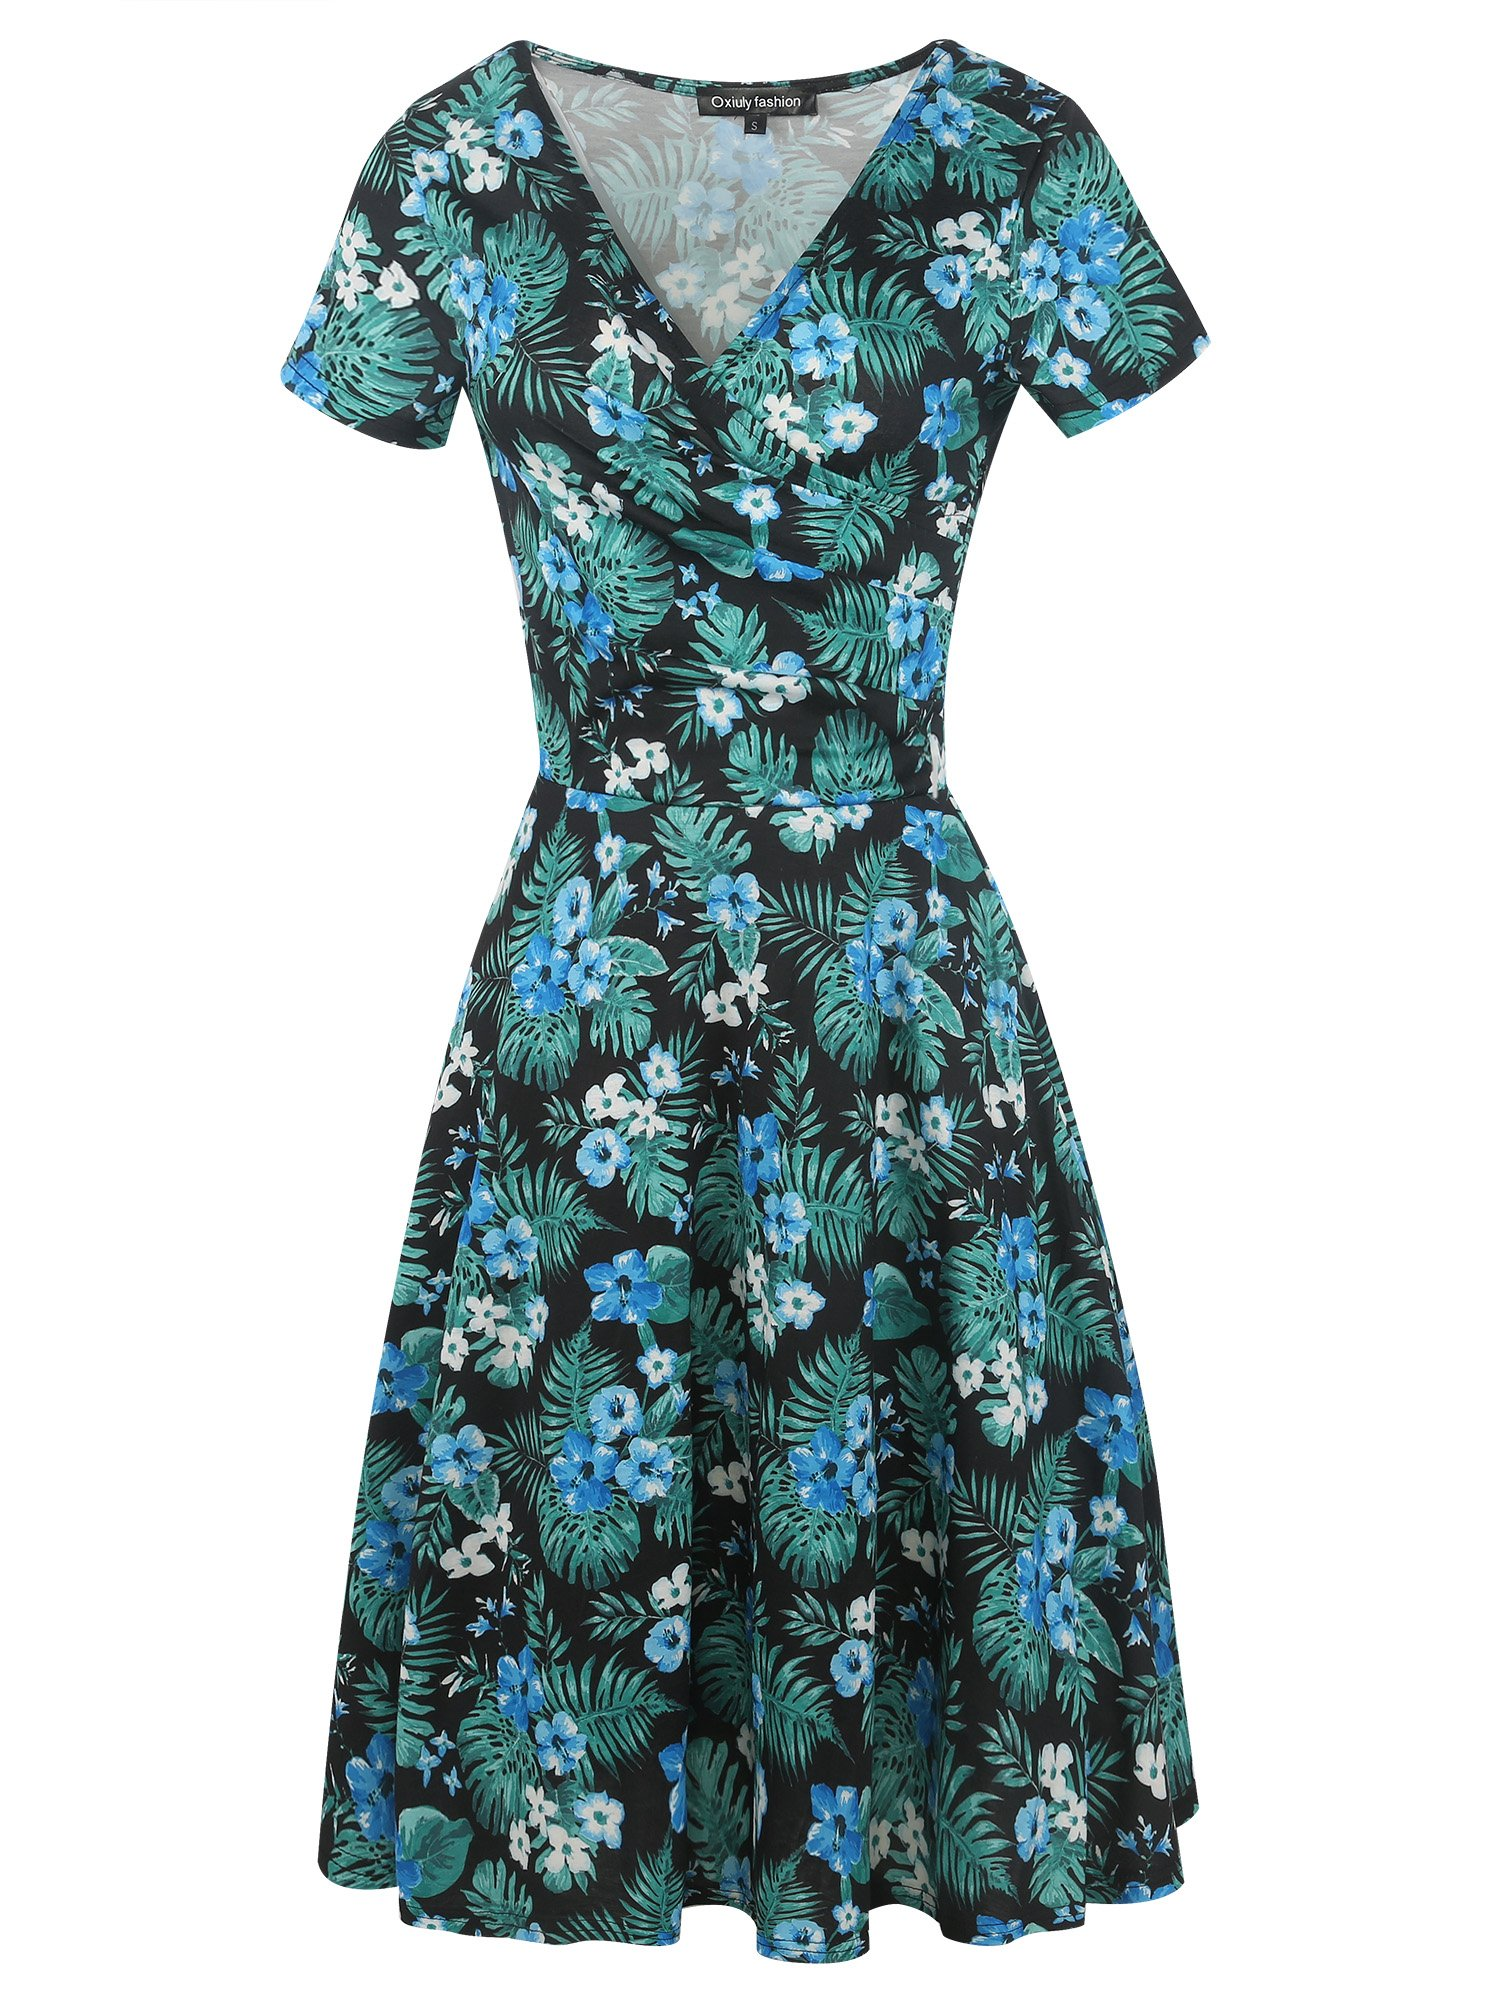 oxiuly Women's Vintage Criss-Cross Necklines V-Neck Short Sleeve Floral Casual Work Swing Dress OX288 (Green, M)